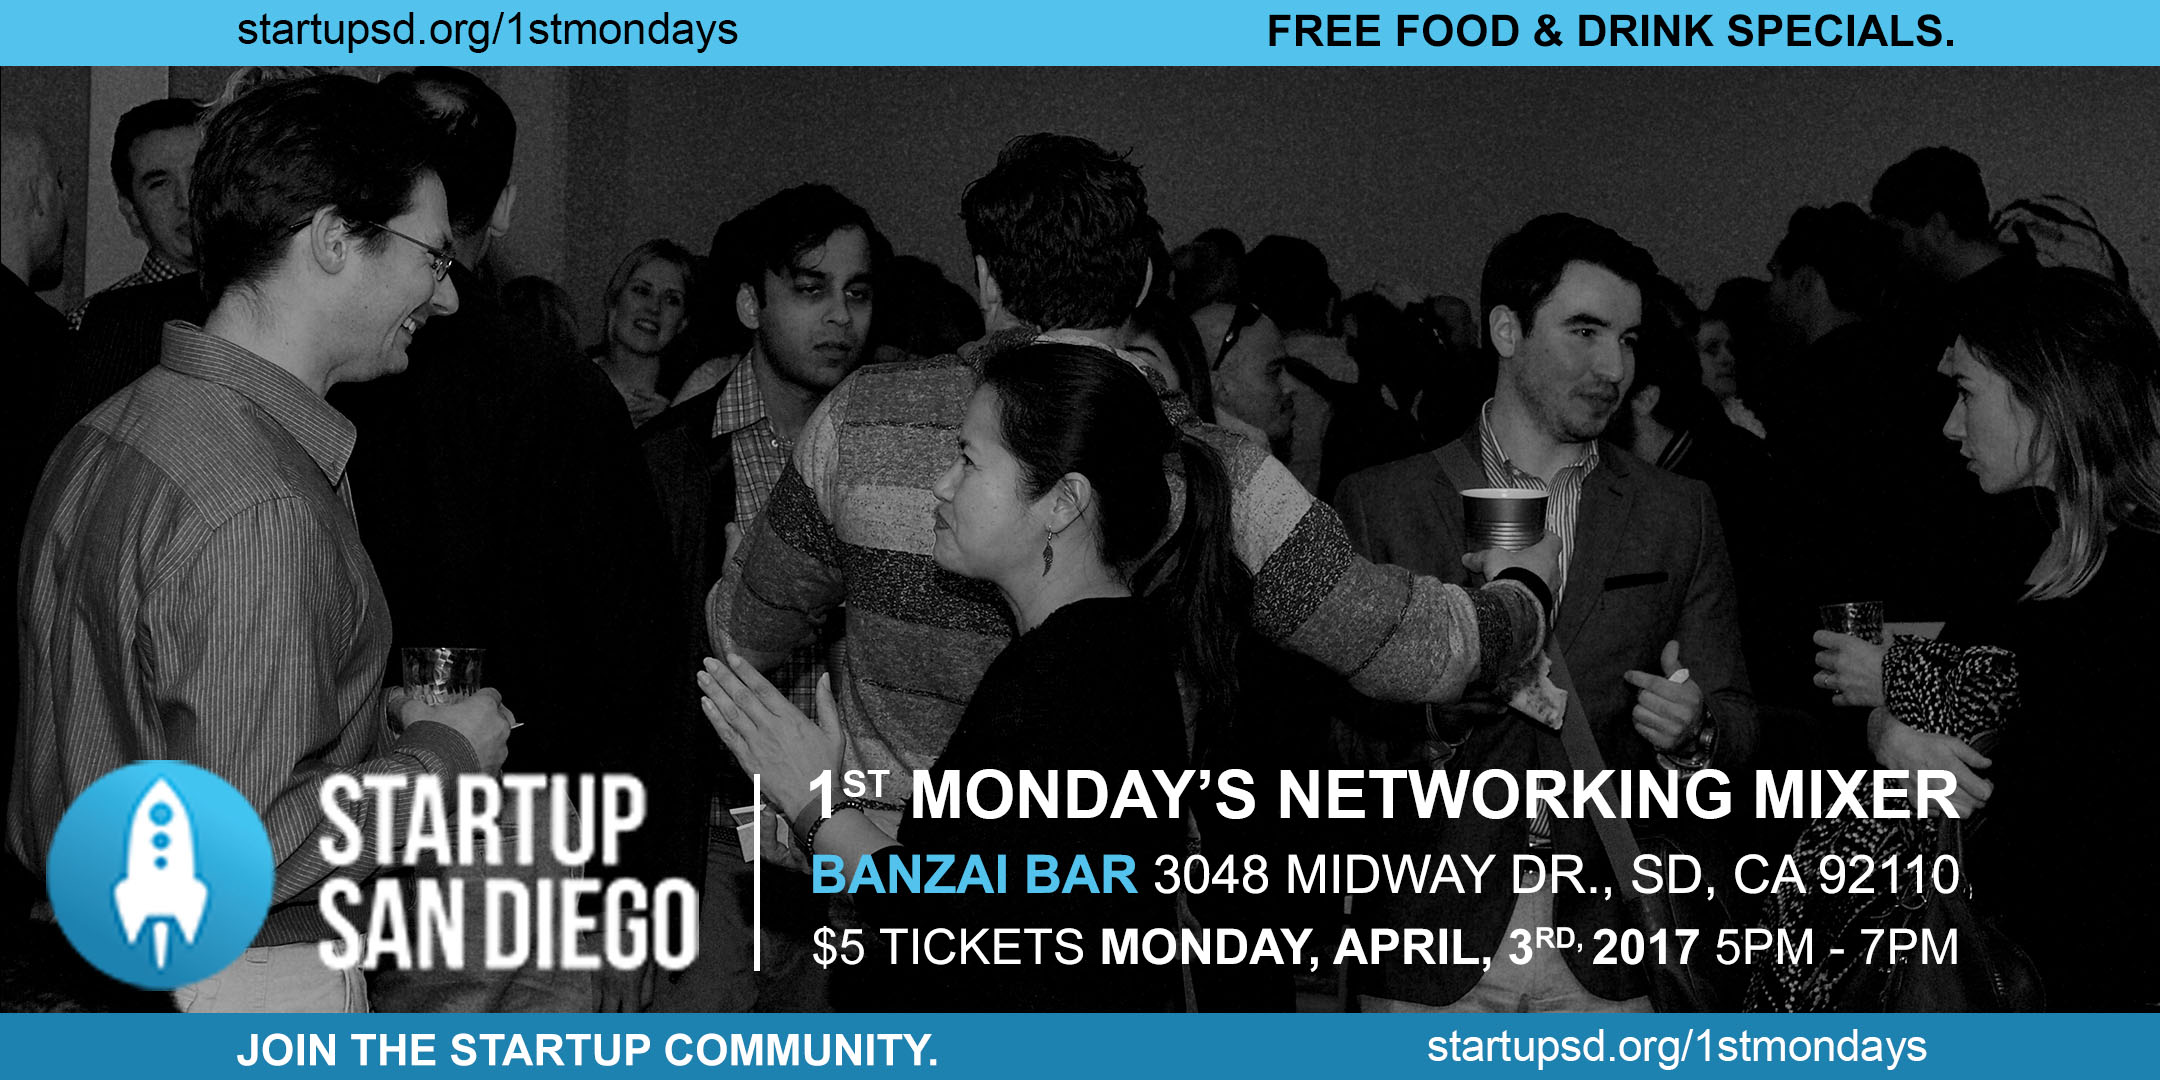 Monthly Networking Mixer @ Banzai Bar